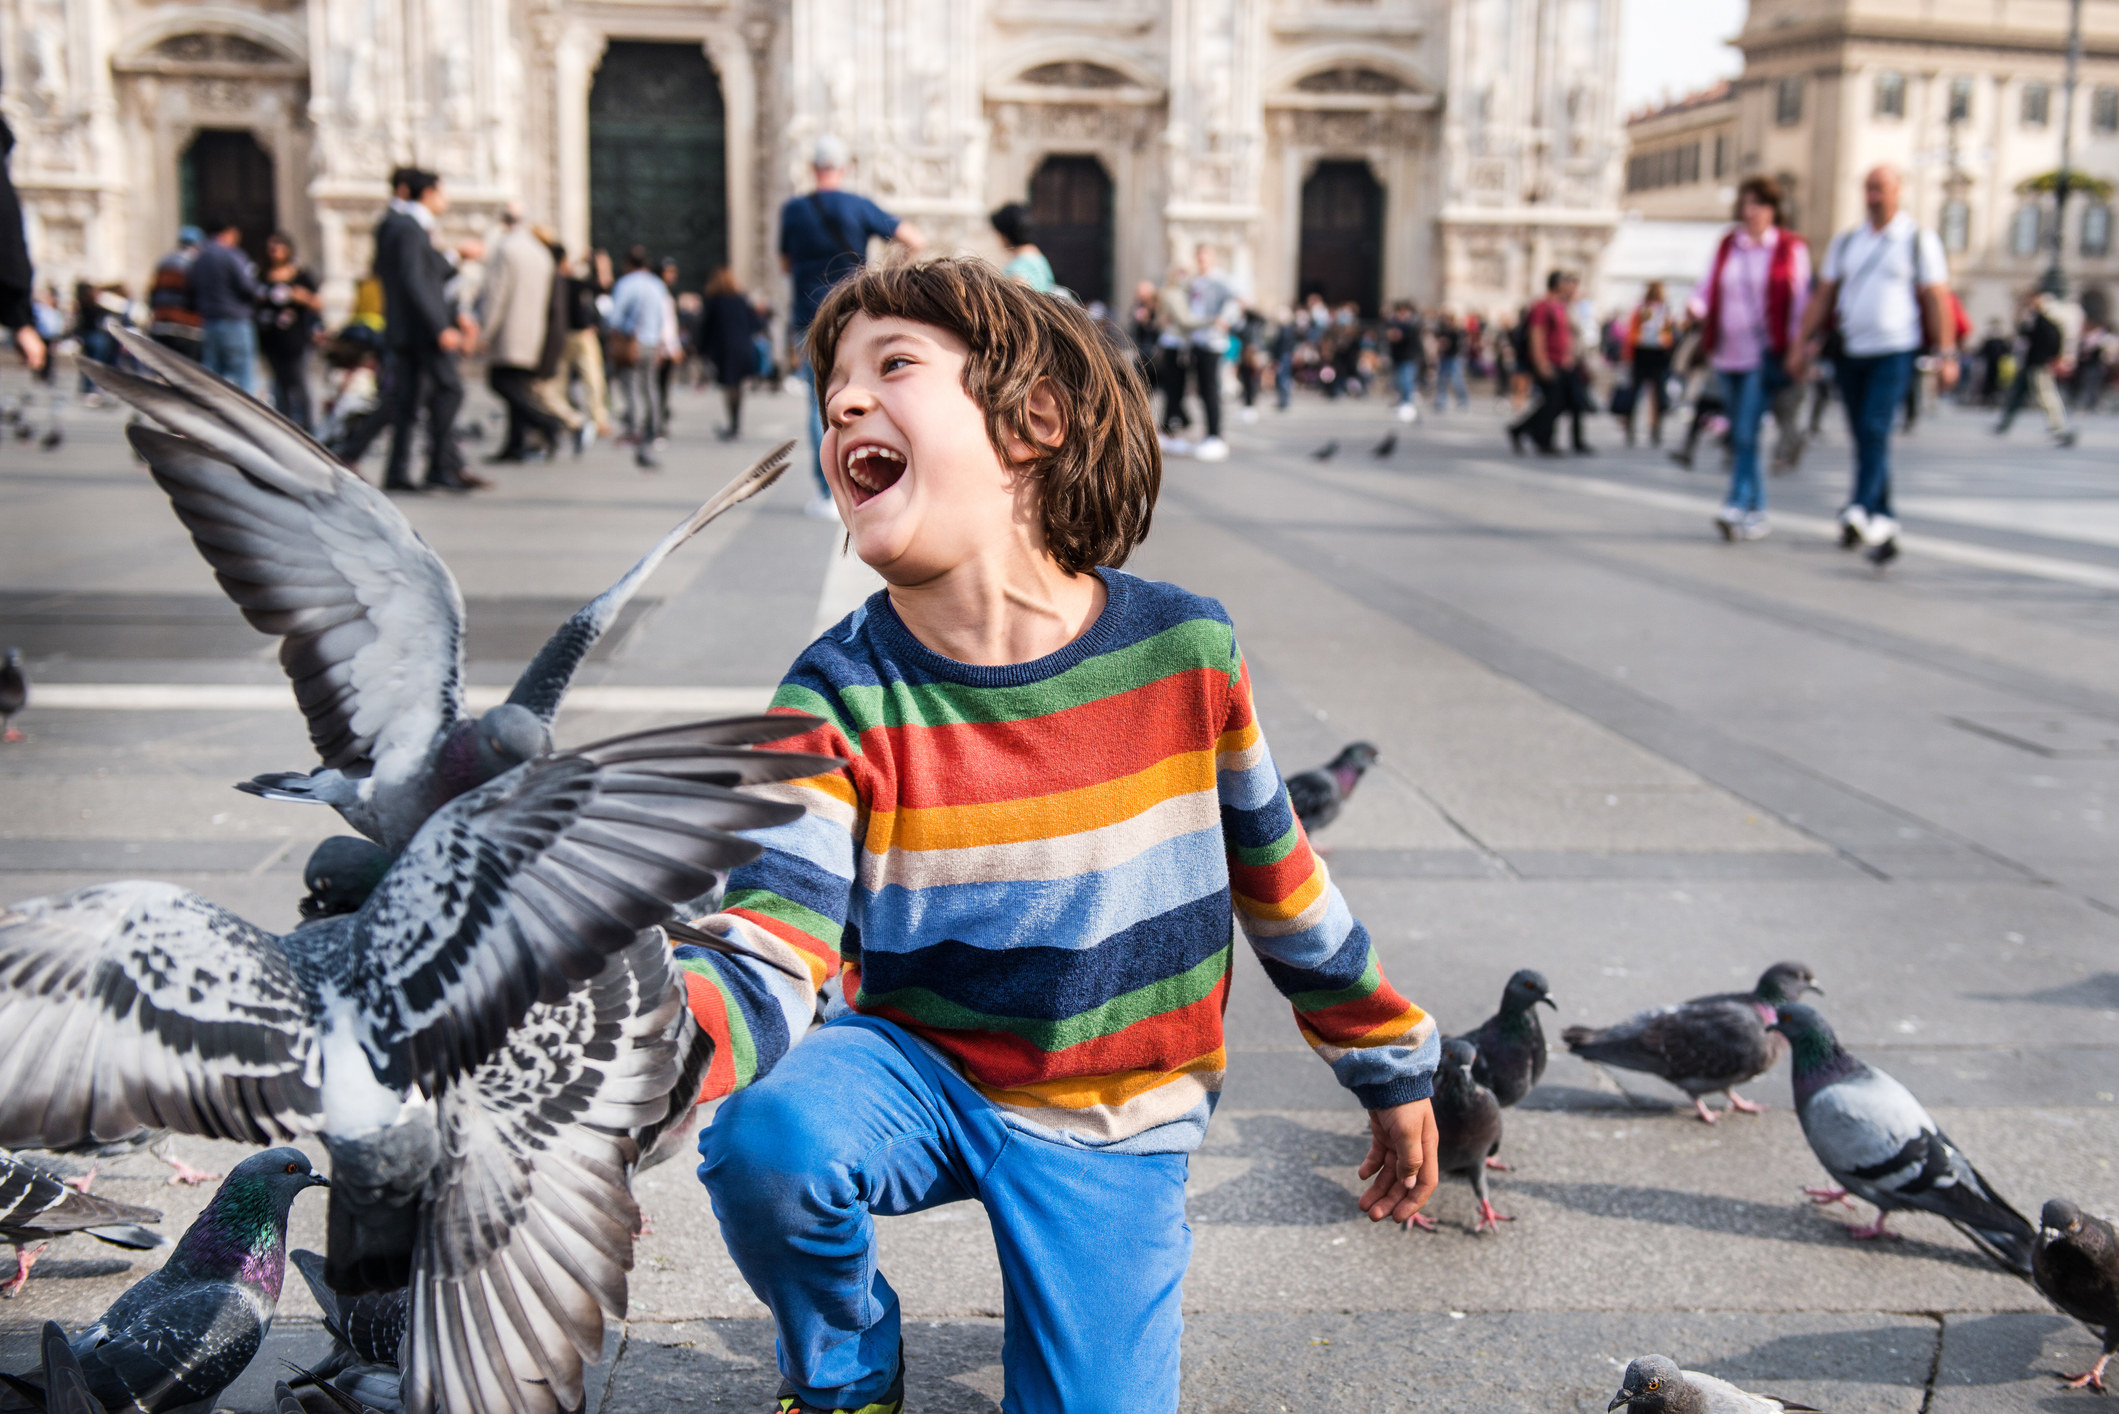 A boy laughs as he's surrounded by pigeons in Venice